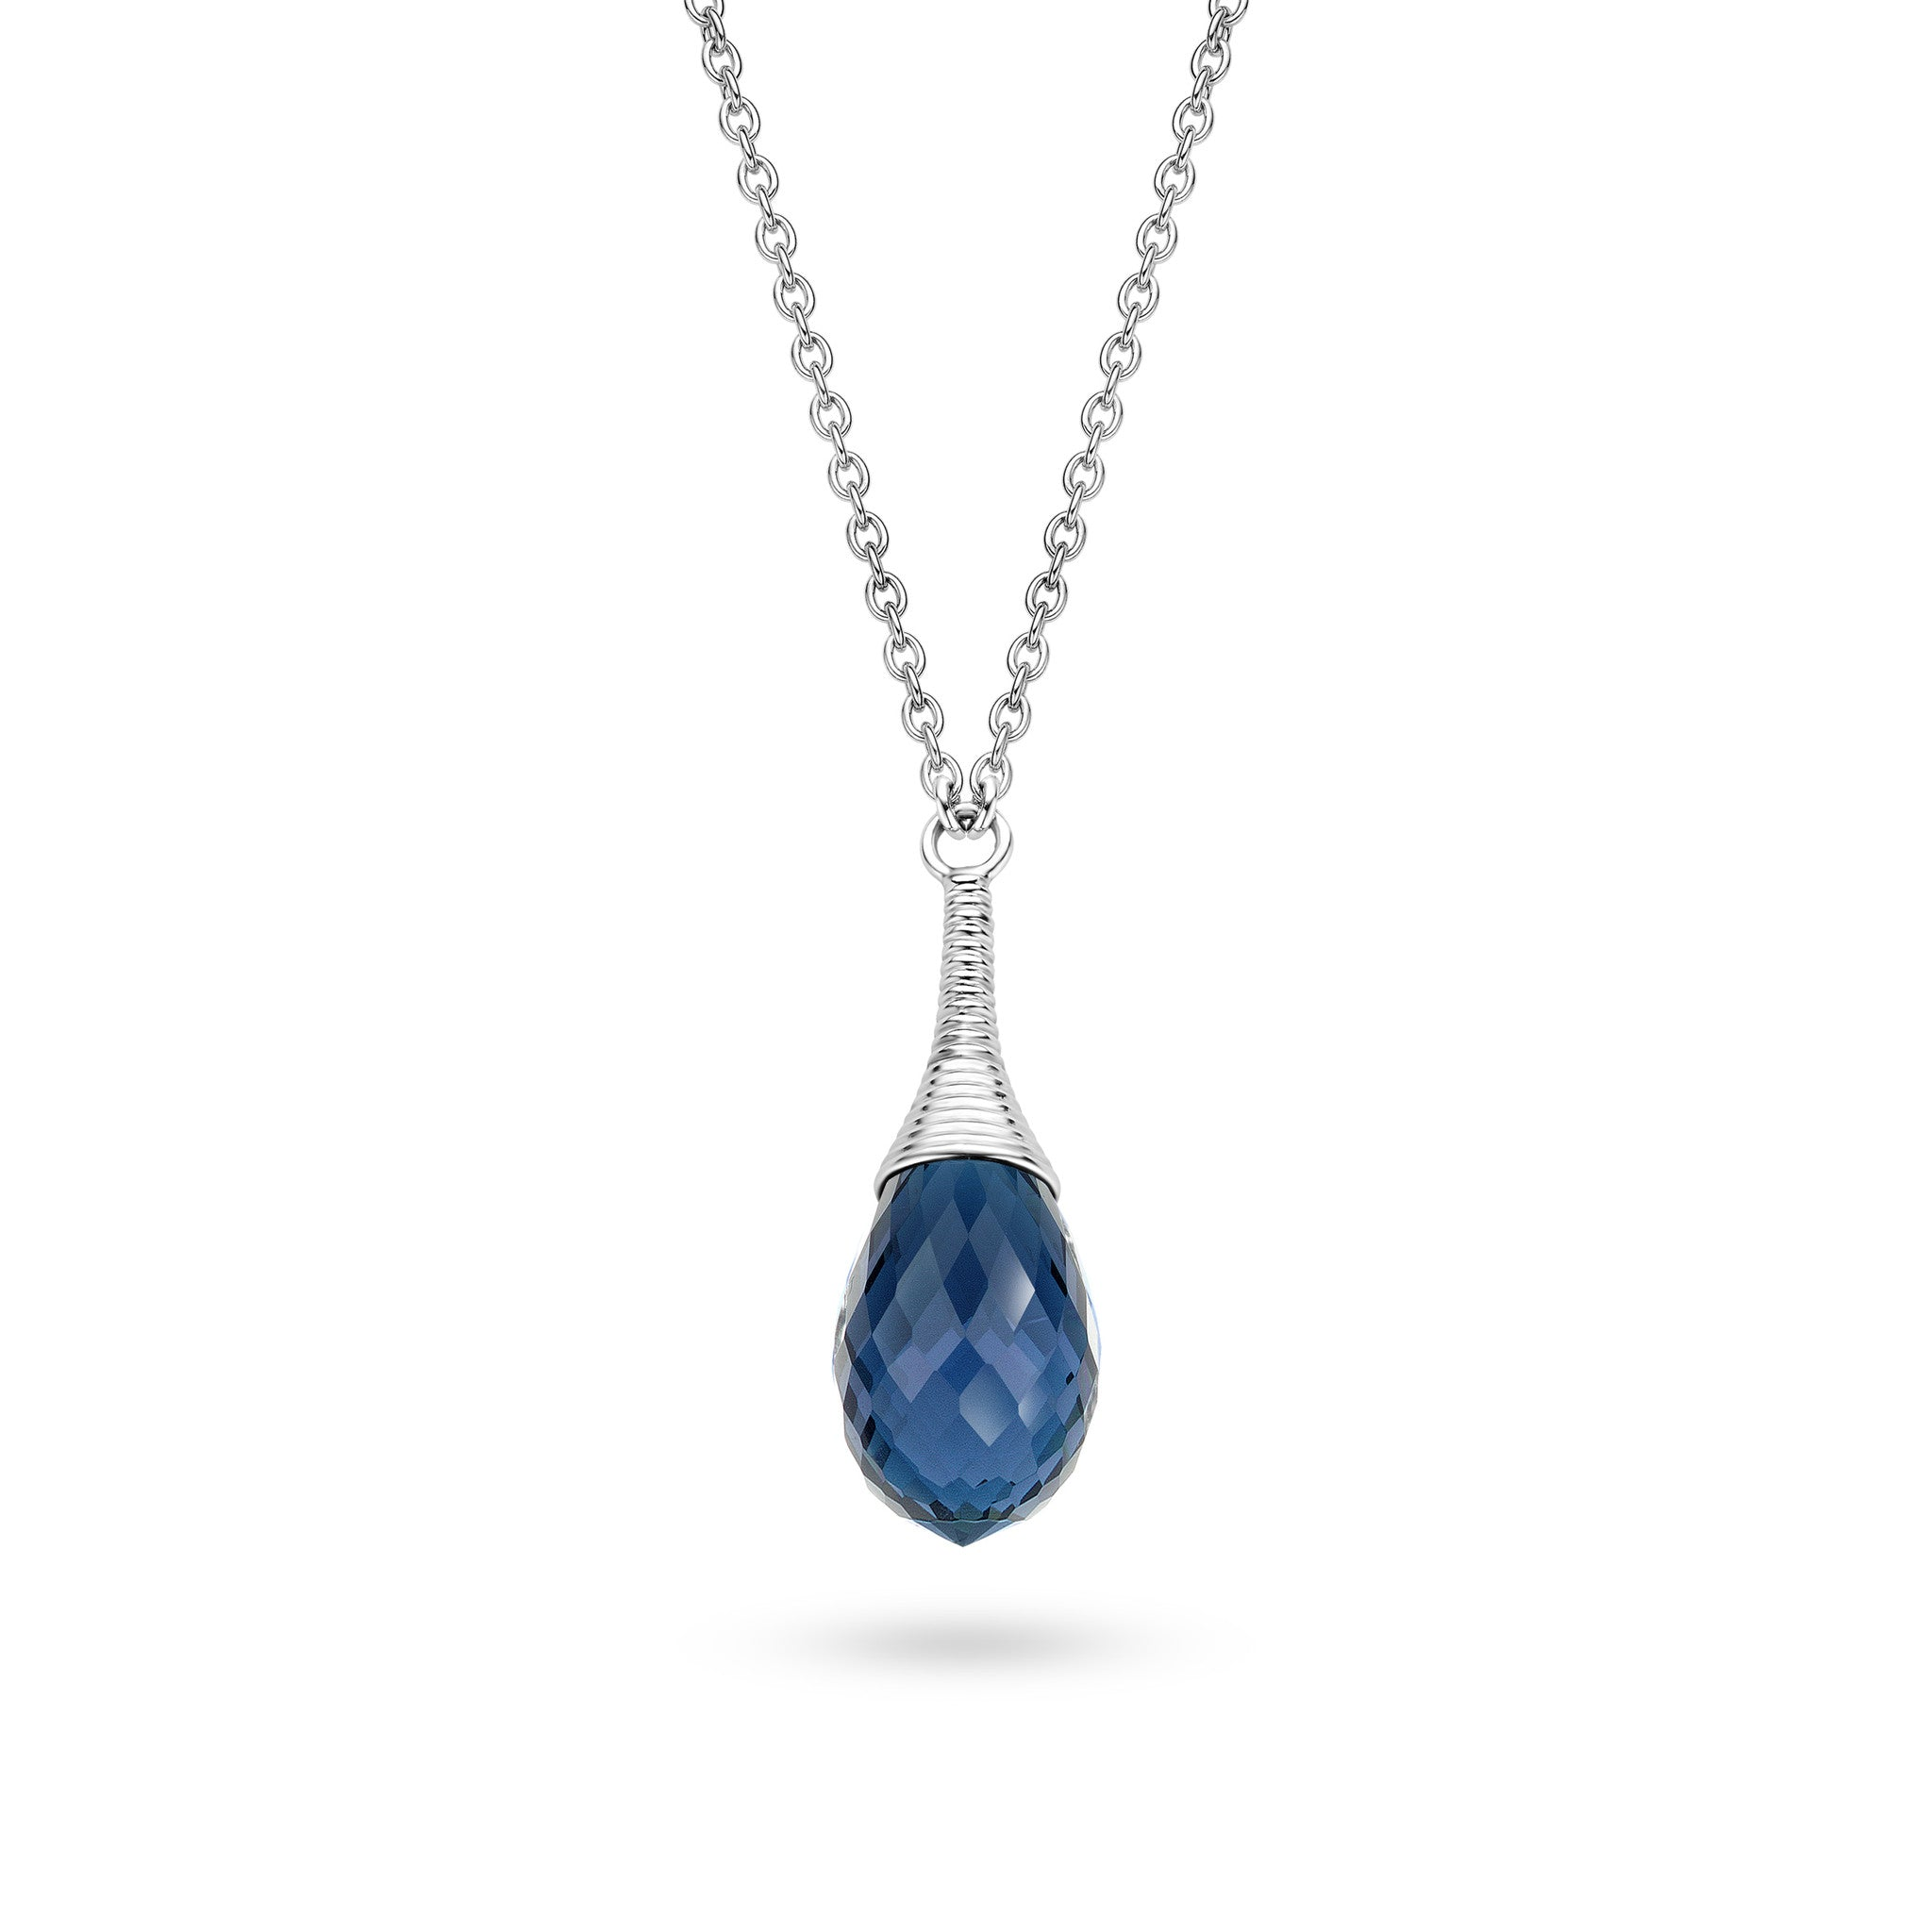 Ti Sento Necklace Silver And Faceted Blue Teardrop